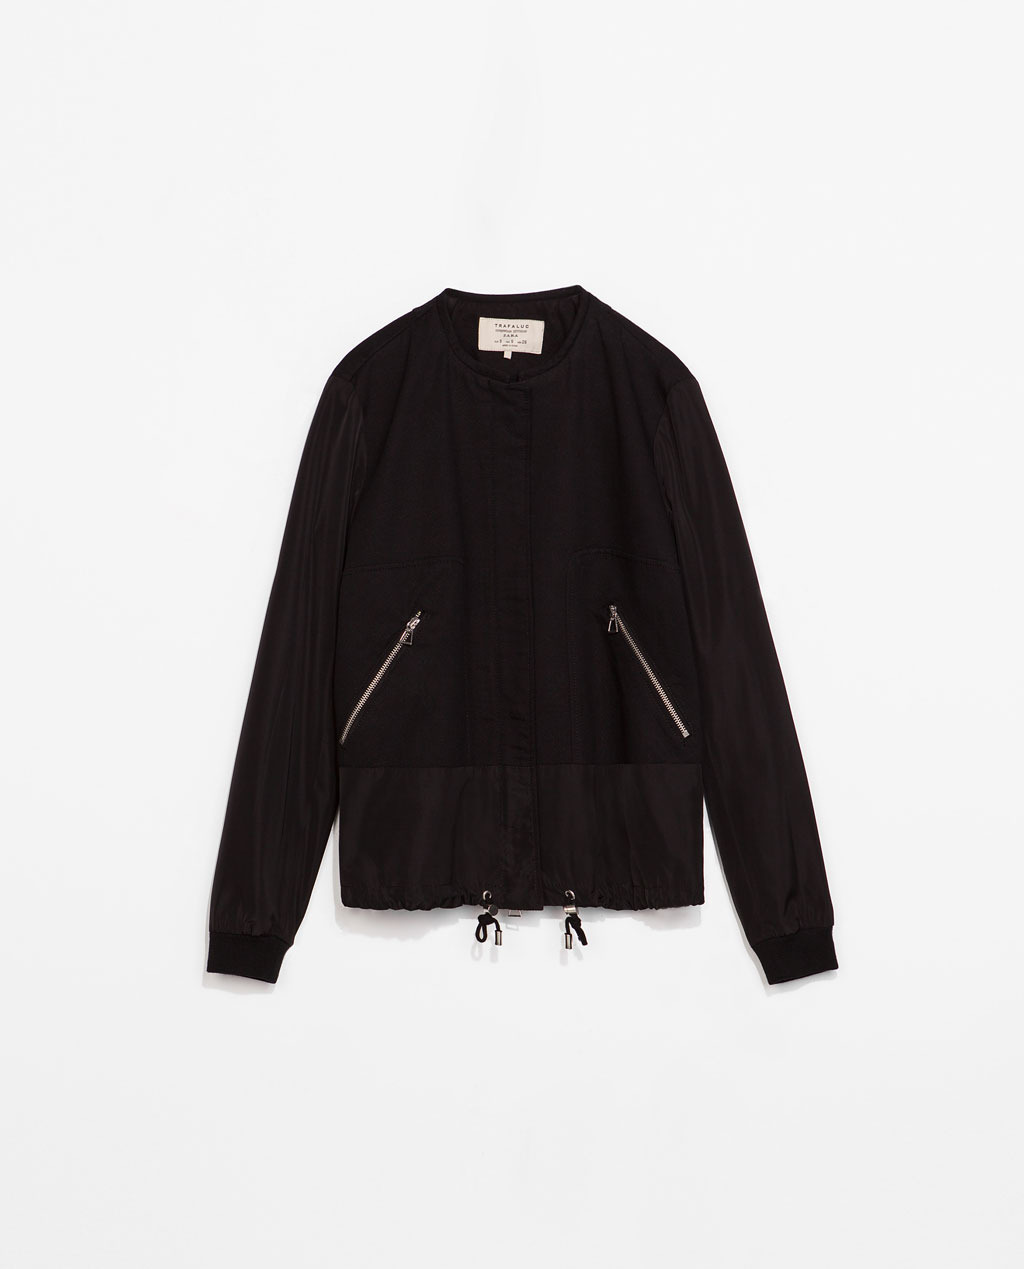 Jacket - pattern: plain; collar: round collar/collarless; style: bomber; predominant colour: black; occasions: casual; length: standard; fit: straight cut (boxy); fibres: cotton - 100%; sleeve length: long sleeve; sleeve style: standard; collar break: high; pattern type: fabric; texture group: woven light midweight; season: s/s 2014